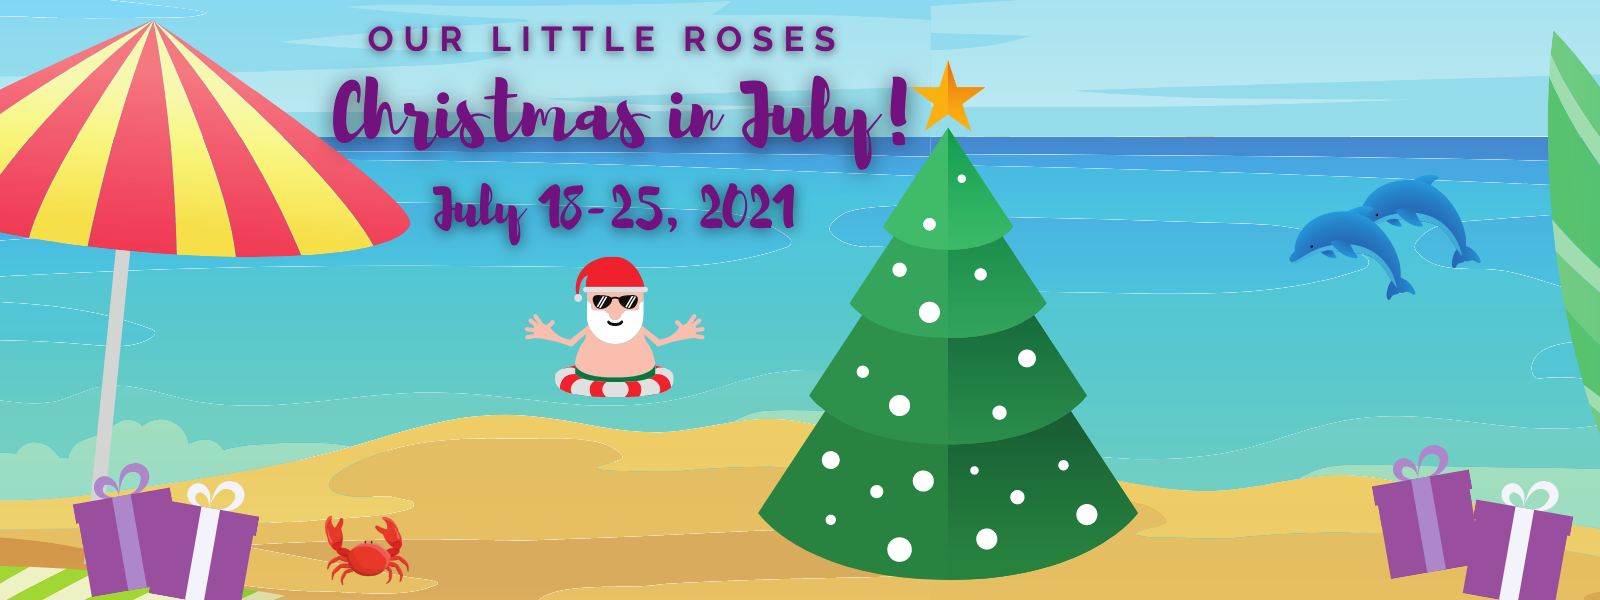 It's Christmas in July! image